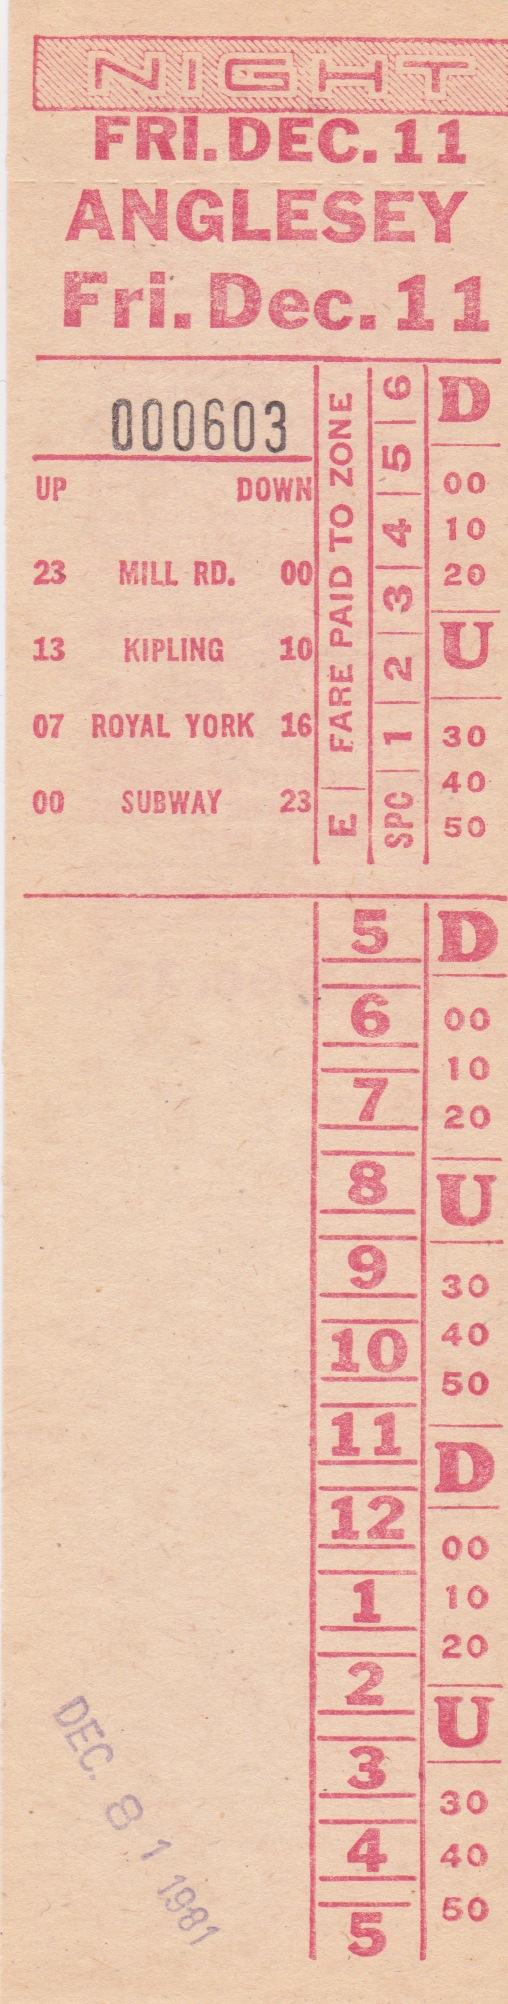 2 Anglesey 1952 2001 Transit Toronto Surface Route